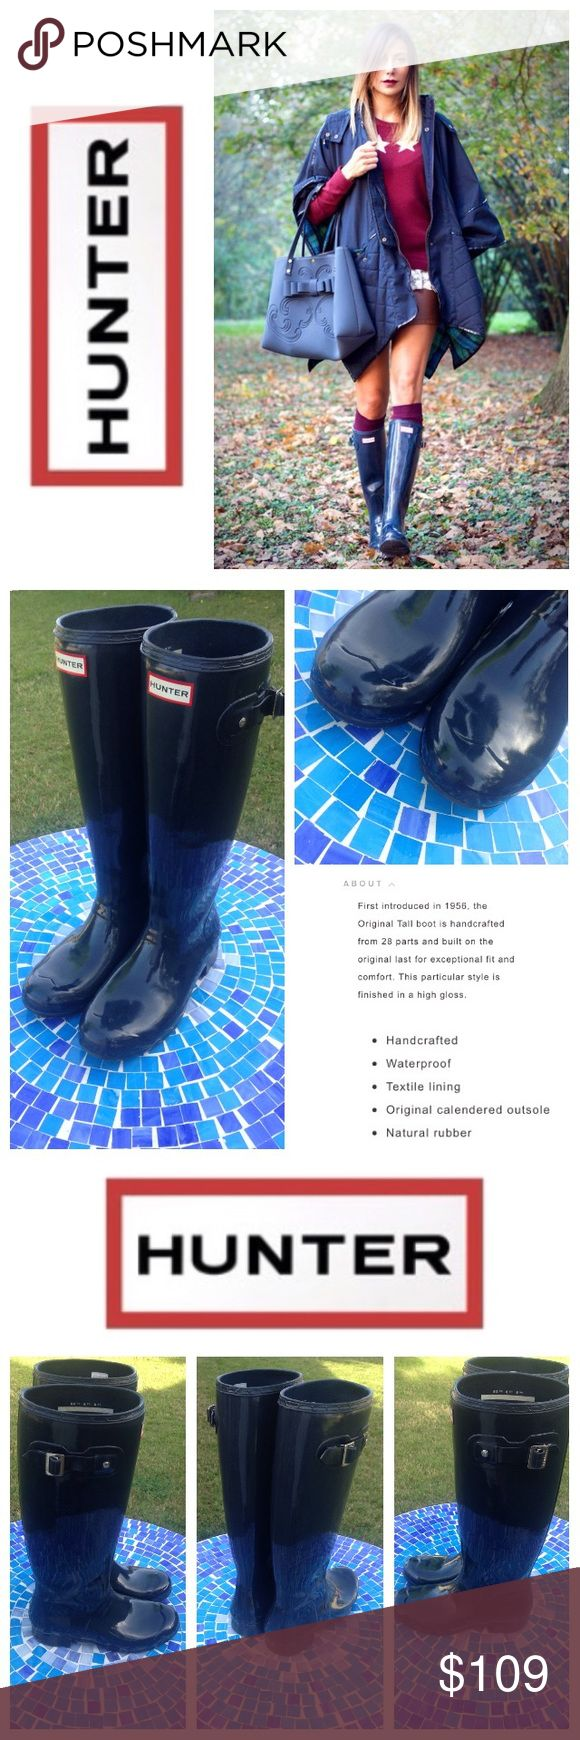 GREAT SHAPE!  HUNTER Original Tall gloss rain boot Exceptionally gorgeous HUNTER Original tall gloss rain boots couldn't be more functional!  Made from 100% waterproof rubber, these wellies will keep you dry in even the wettest weather!  Perfect for year-round wear & absolutely iconic, never going out of style!   Shade is a gorgeous blue, an ideal, neutral alternative to boring black!  No trades please.  Size is US 8 EU 39.  Retail at $160!  Gently worn with minimal wear to rubber, in…